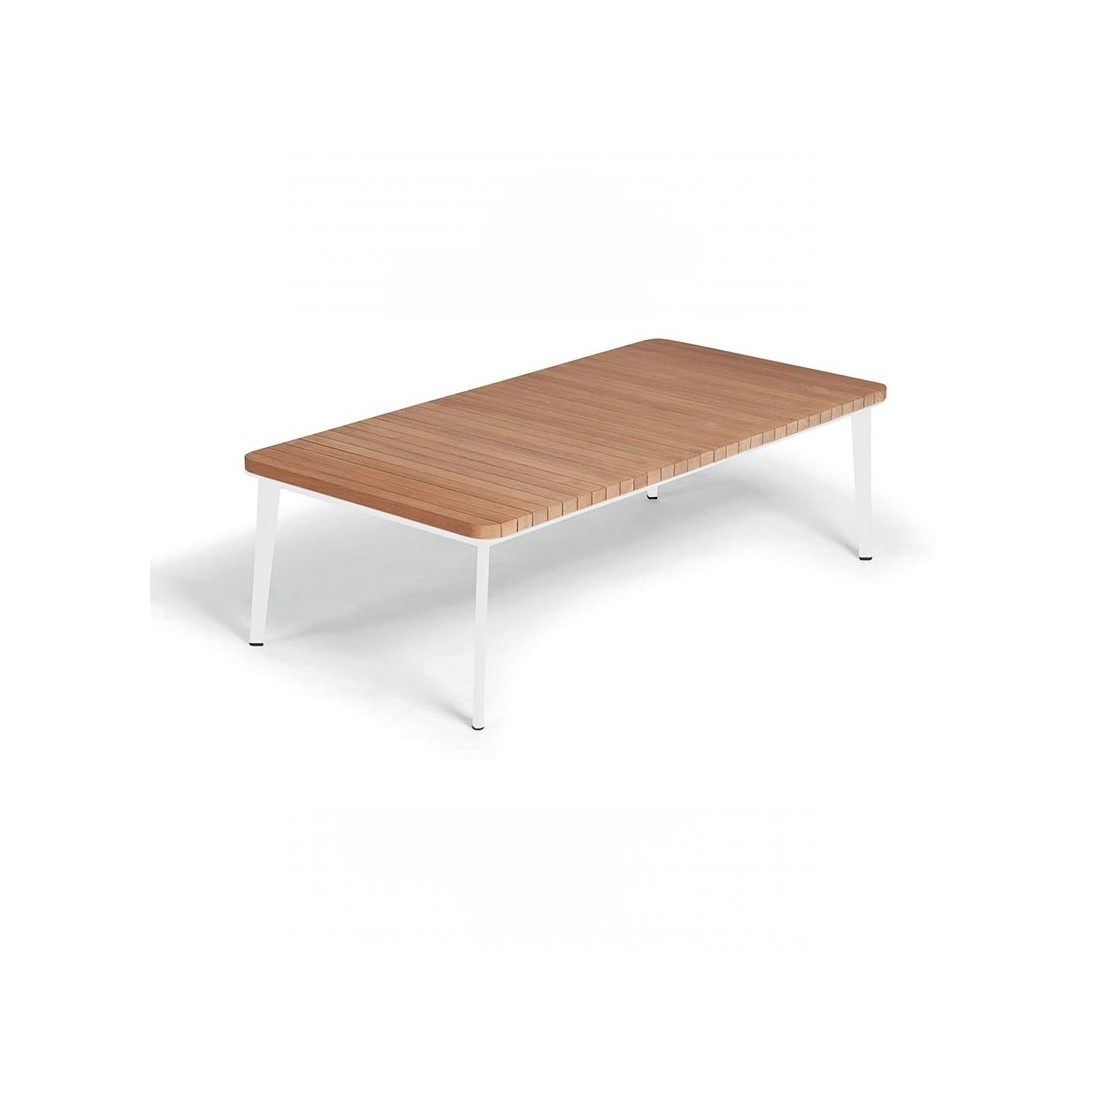 Table basse rectangulaire en teck et aluminium collection riba de triconfort - Table basse blanche rectangulaire ...